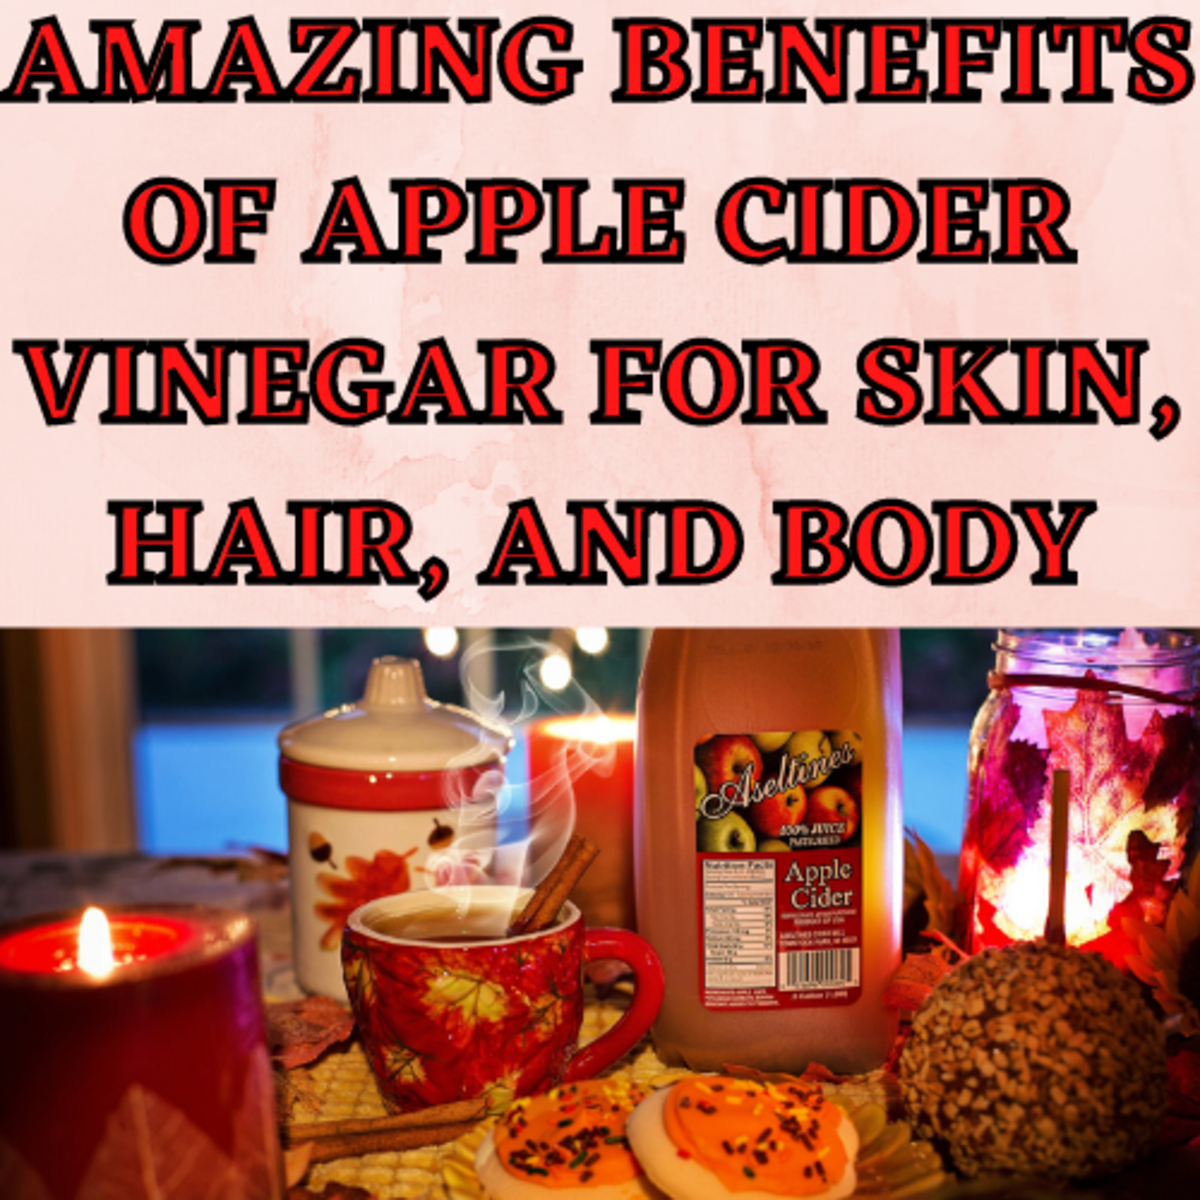 amazing-benefits-of-apple-cider-vinegar-for-skin-hair-and-body